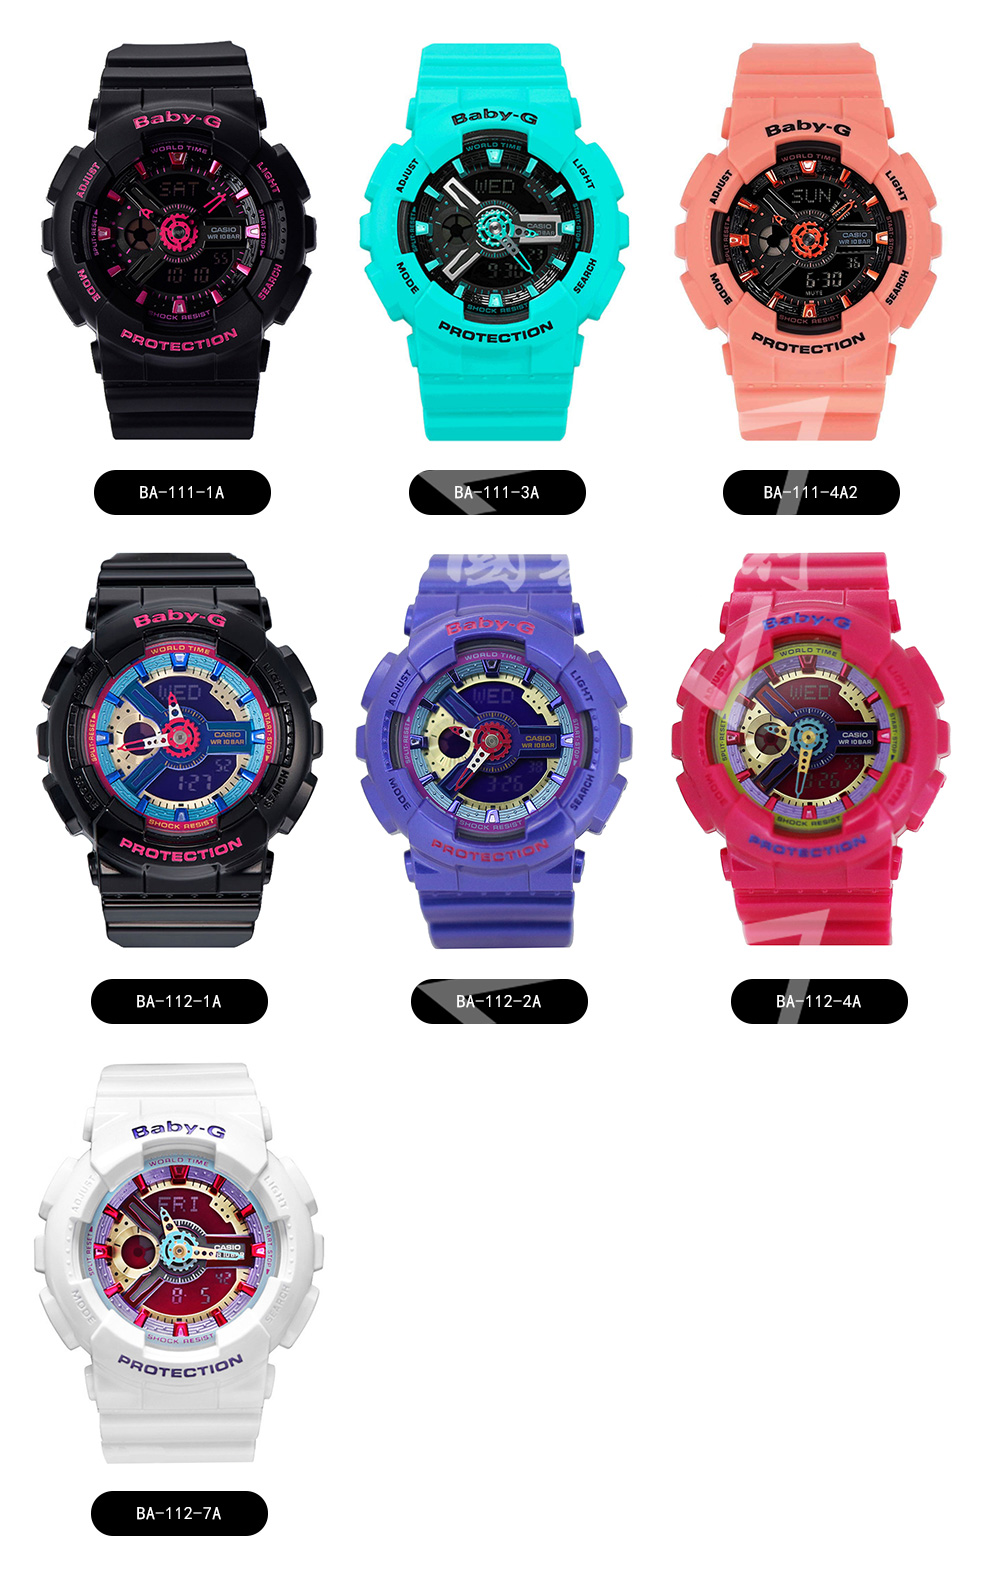 Unlimited Service Casio Watch Baby G Girls Generation Trend Ba 112 7a Technical